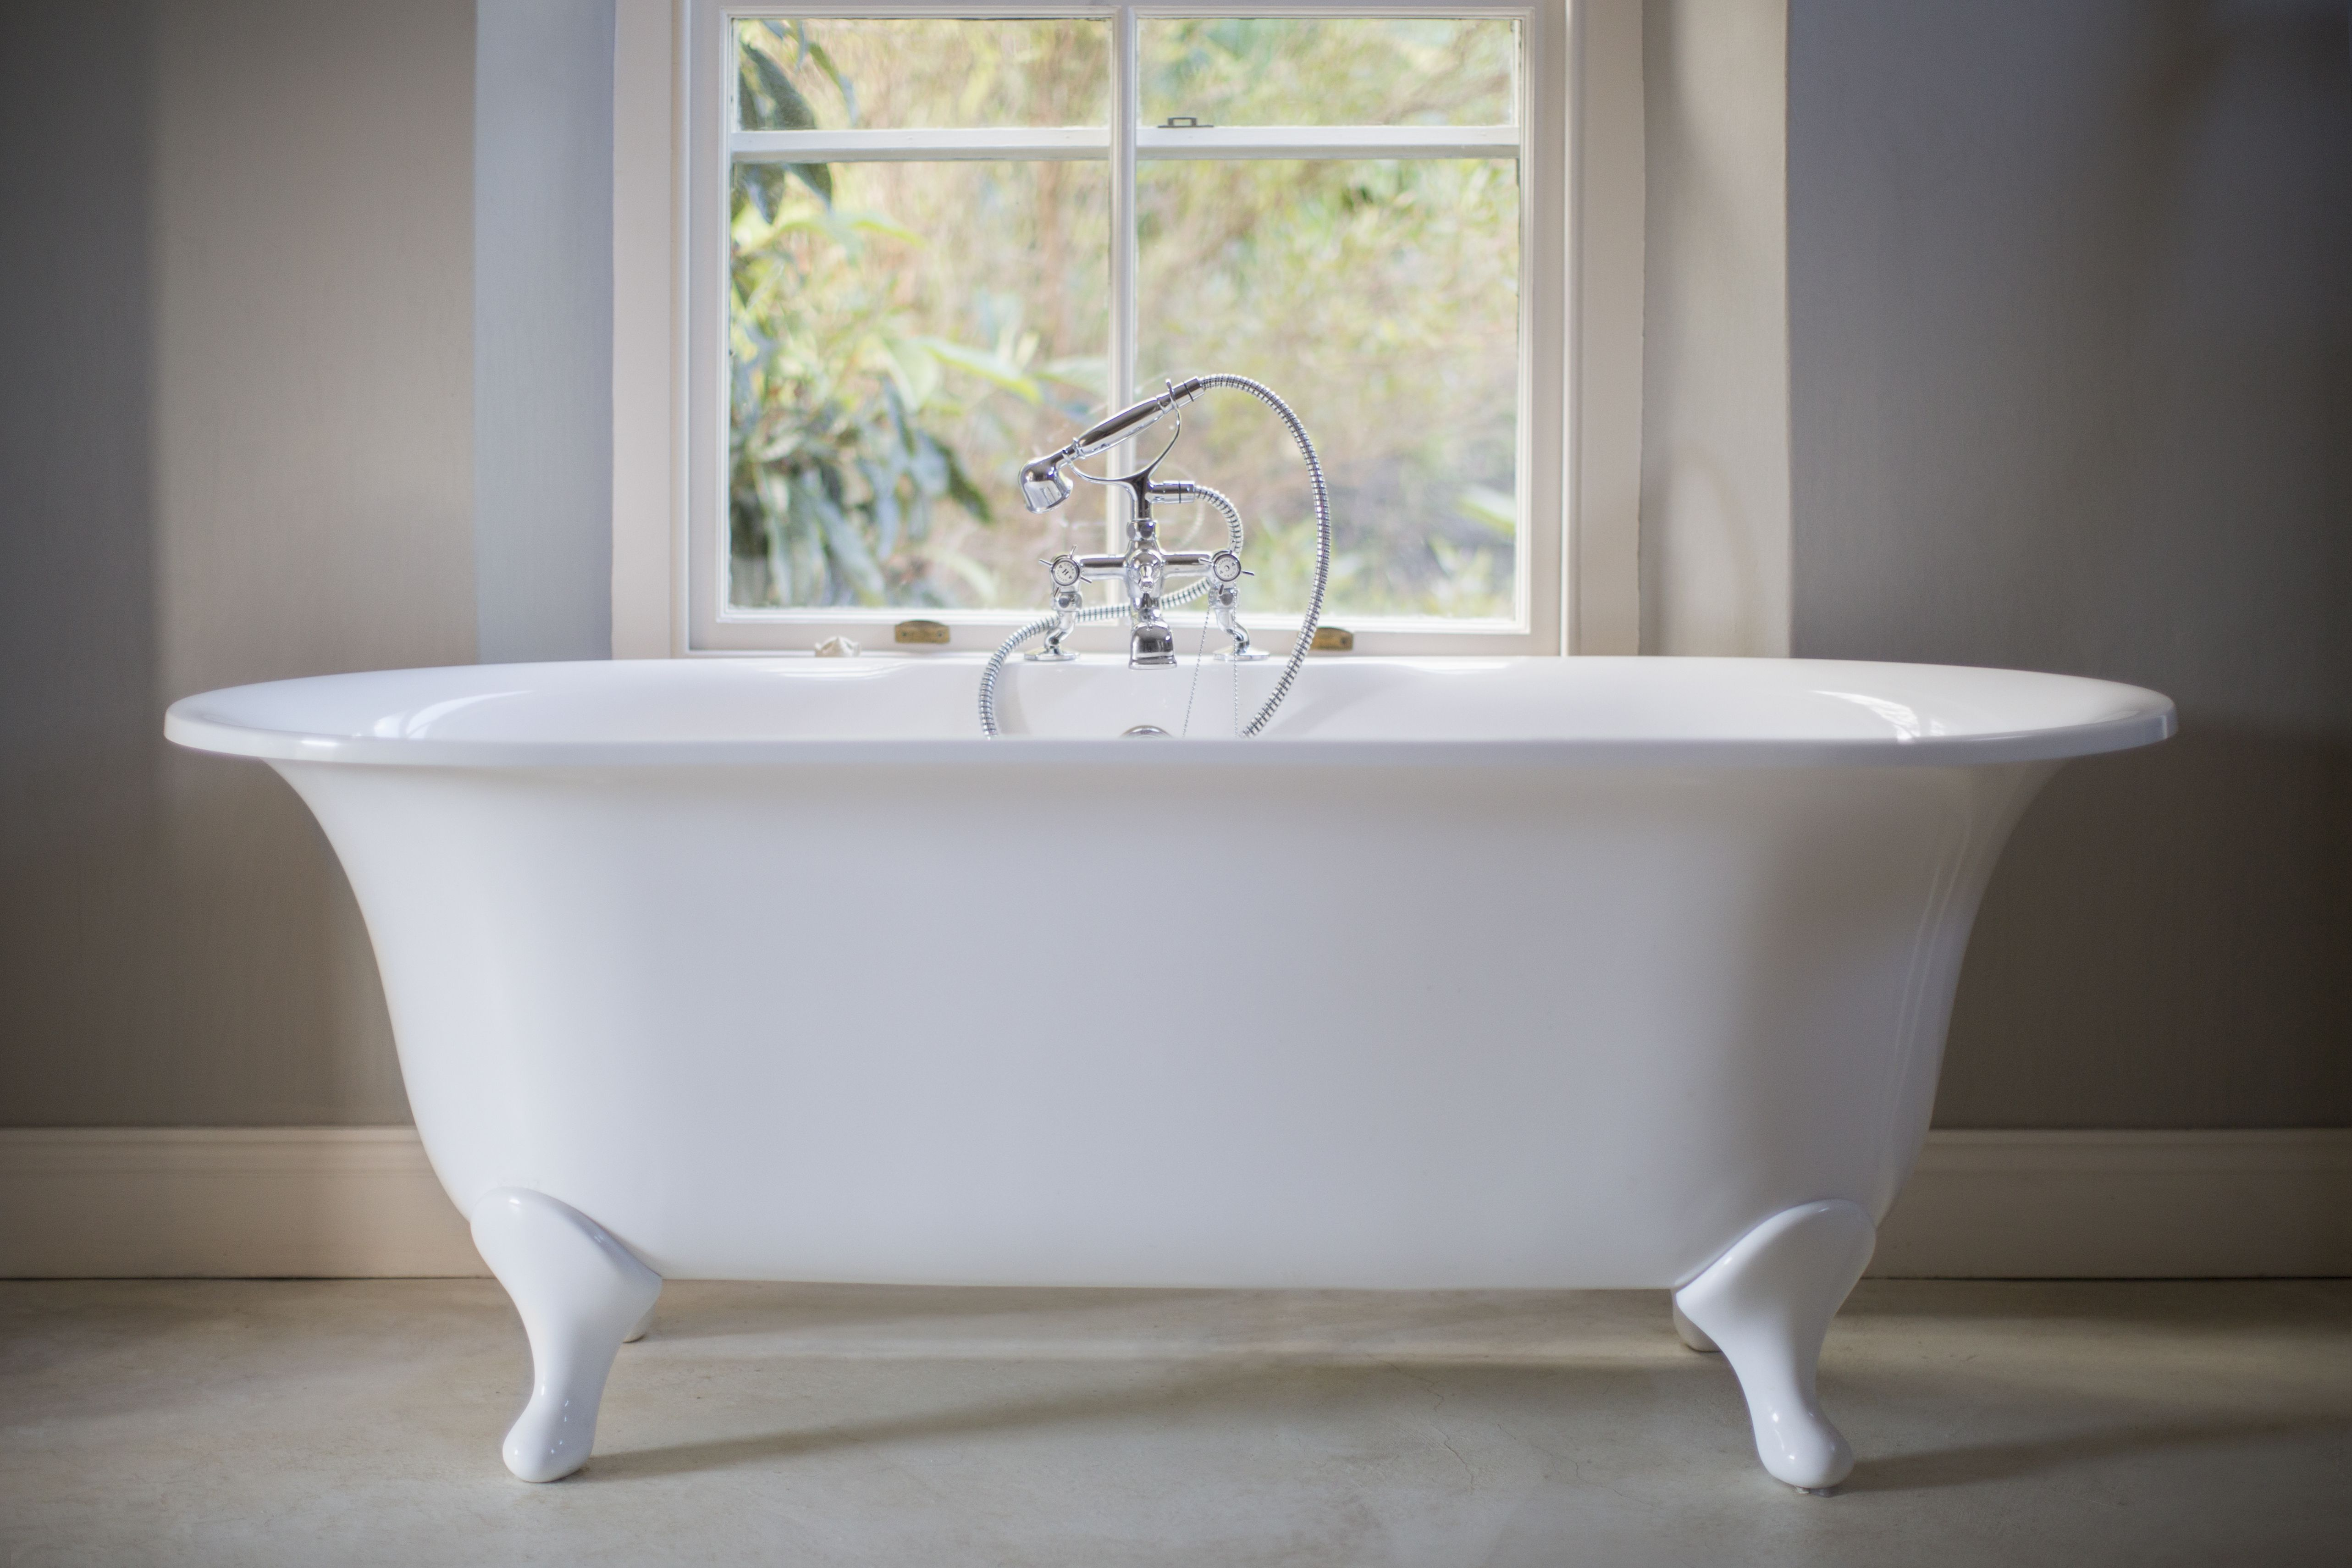 chip kit bathtub refinishing tub repair jaeger depot australia reviews resurfacing bath home